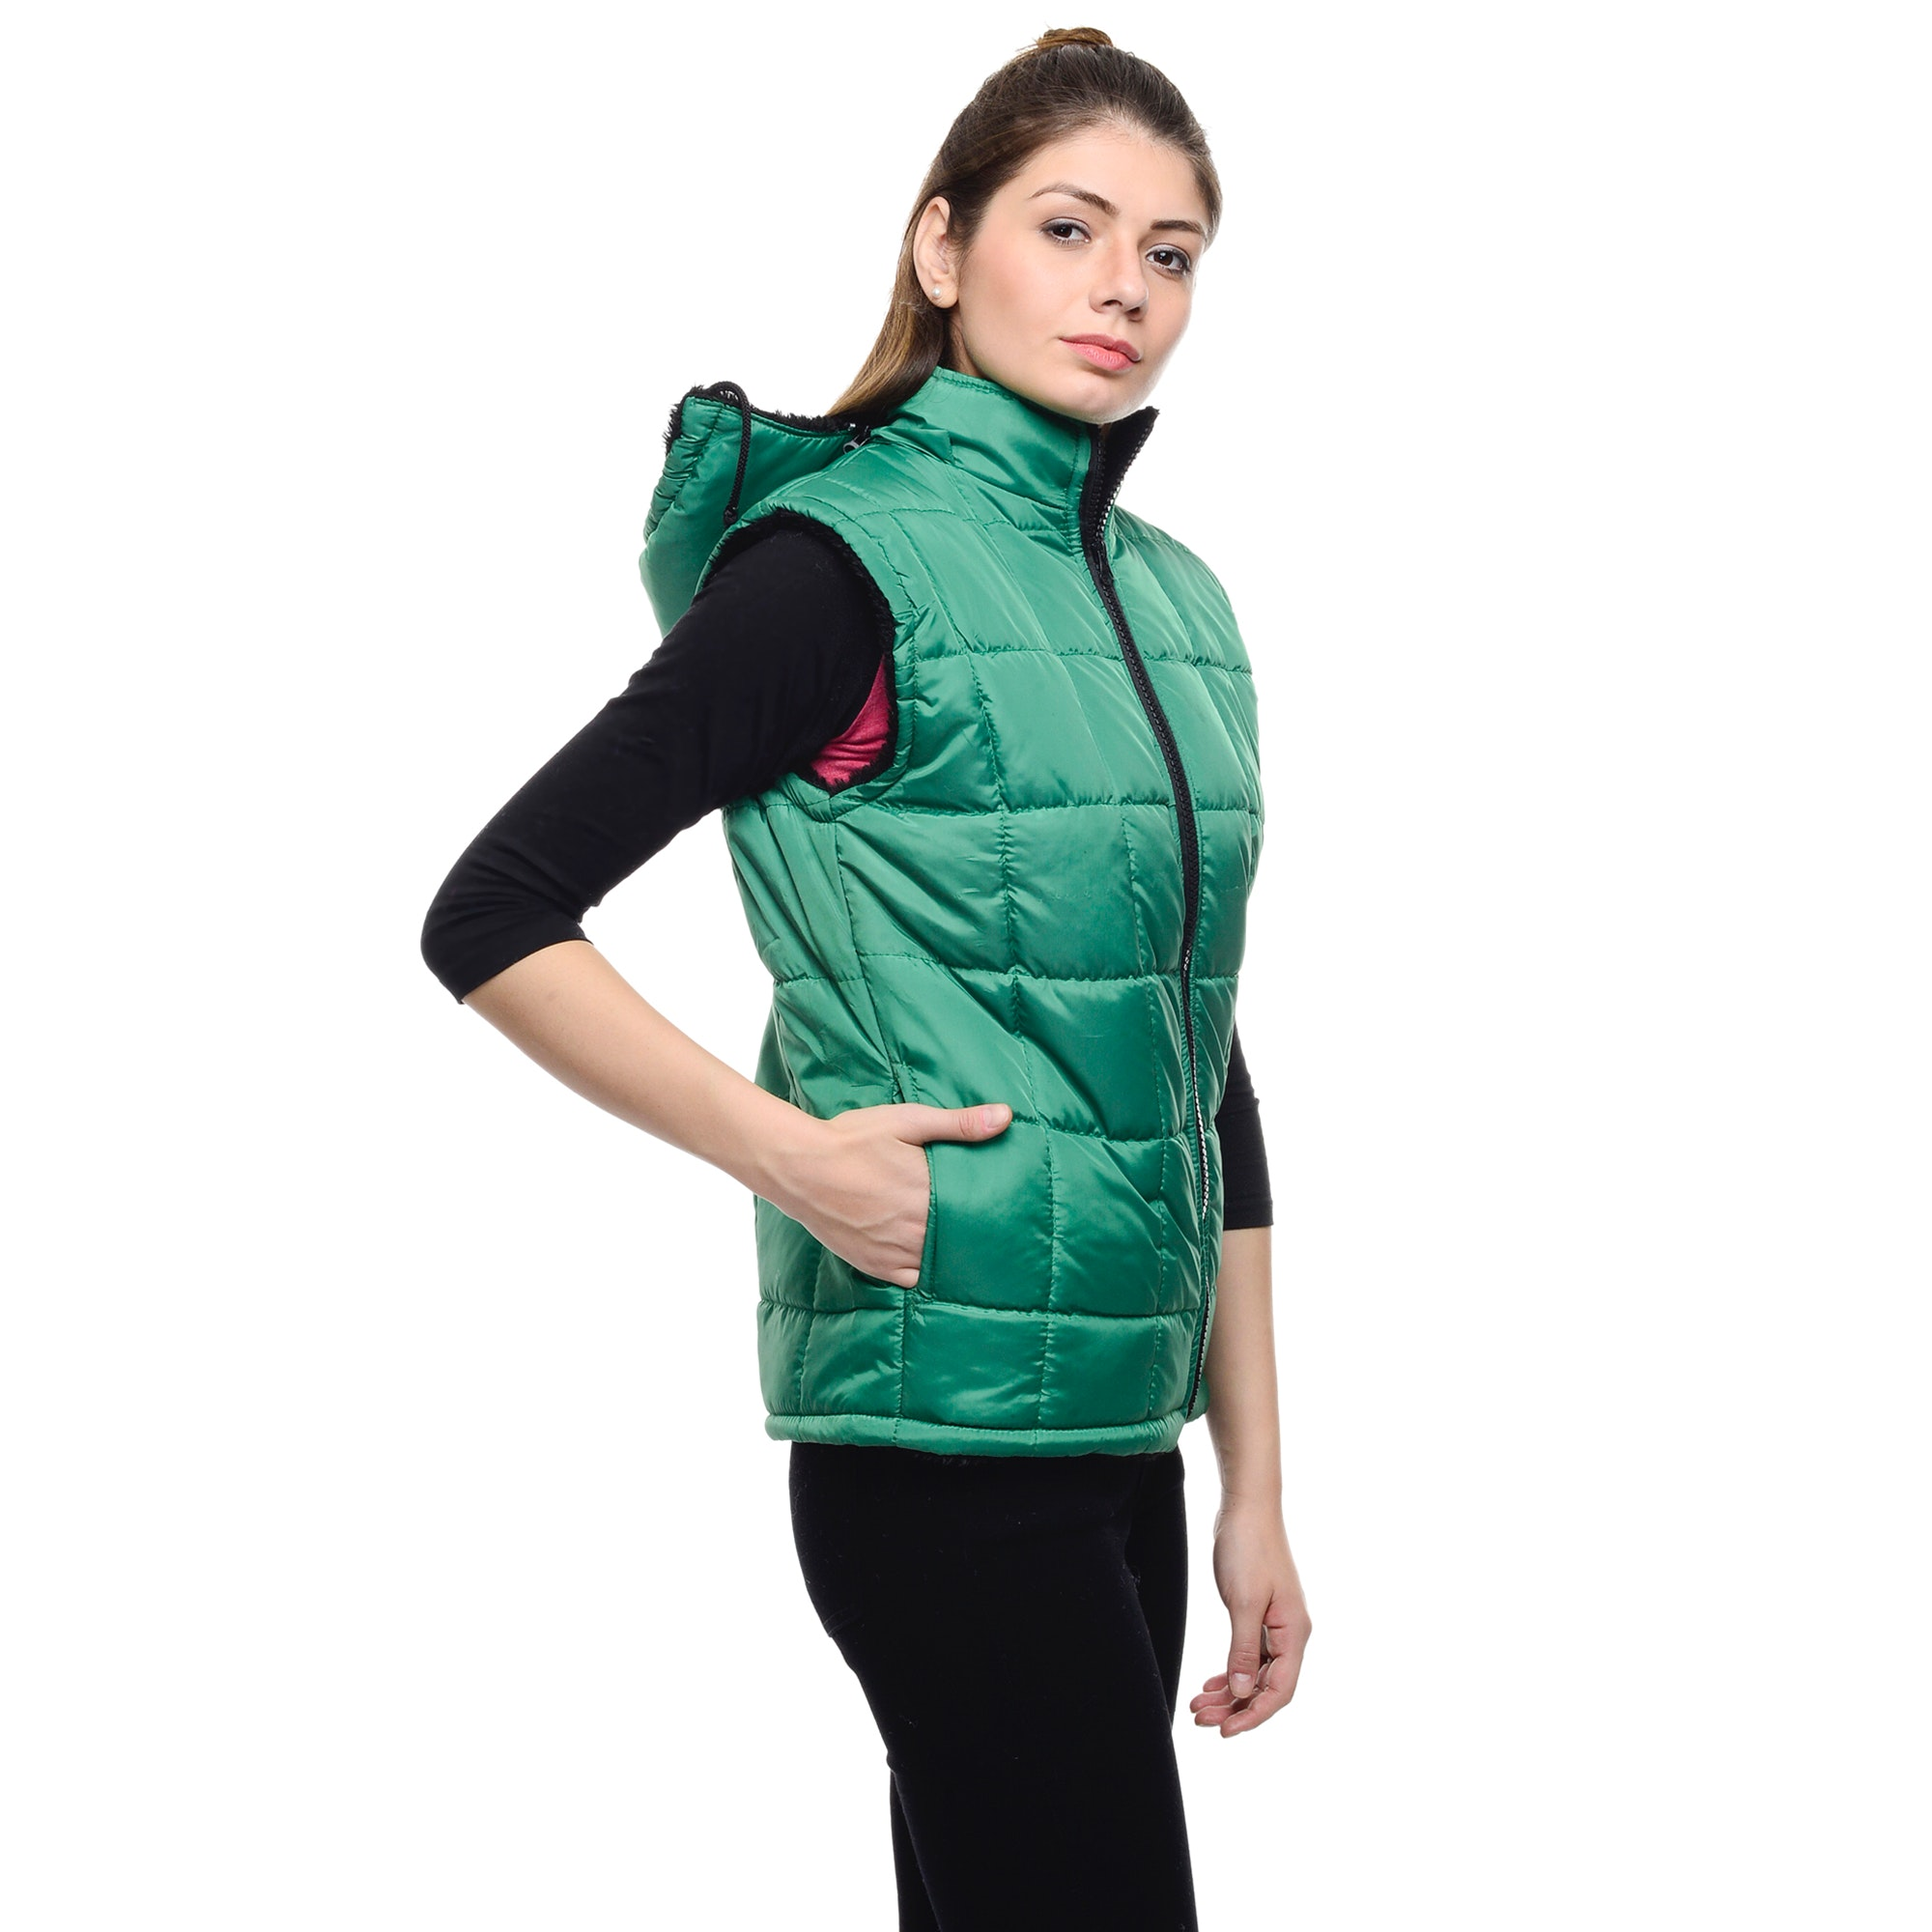 Woman wearing a green puffer vest and a black pants photo